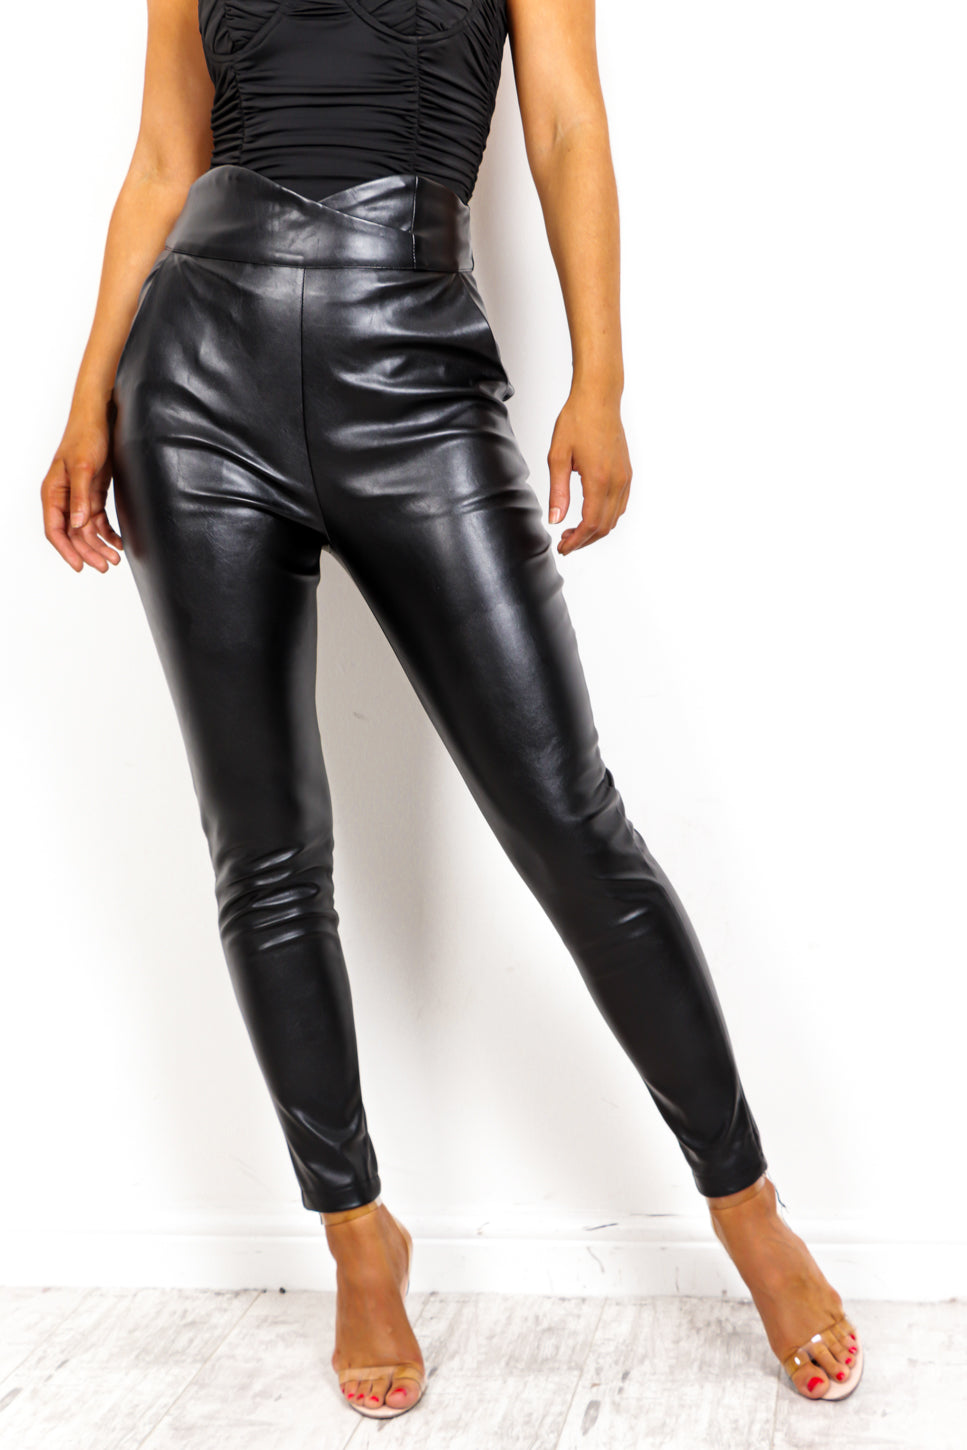 The Business - Trousers In BLACK-PU